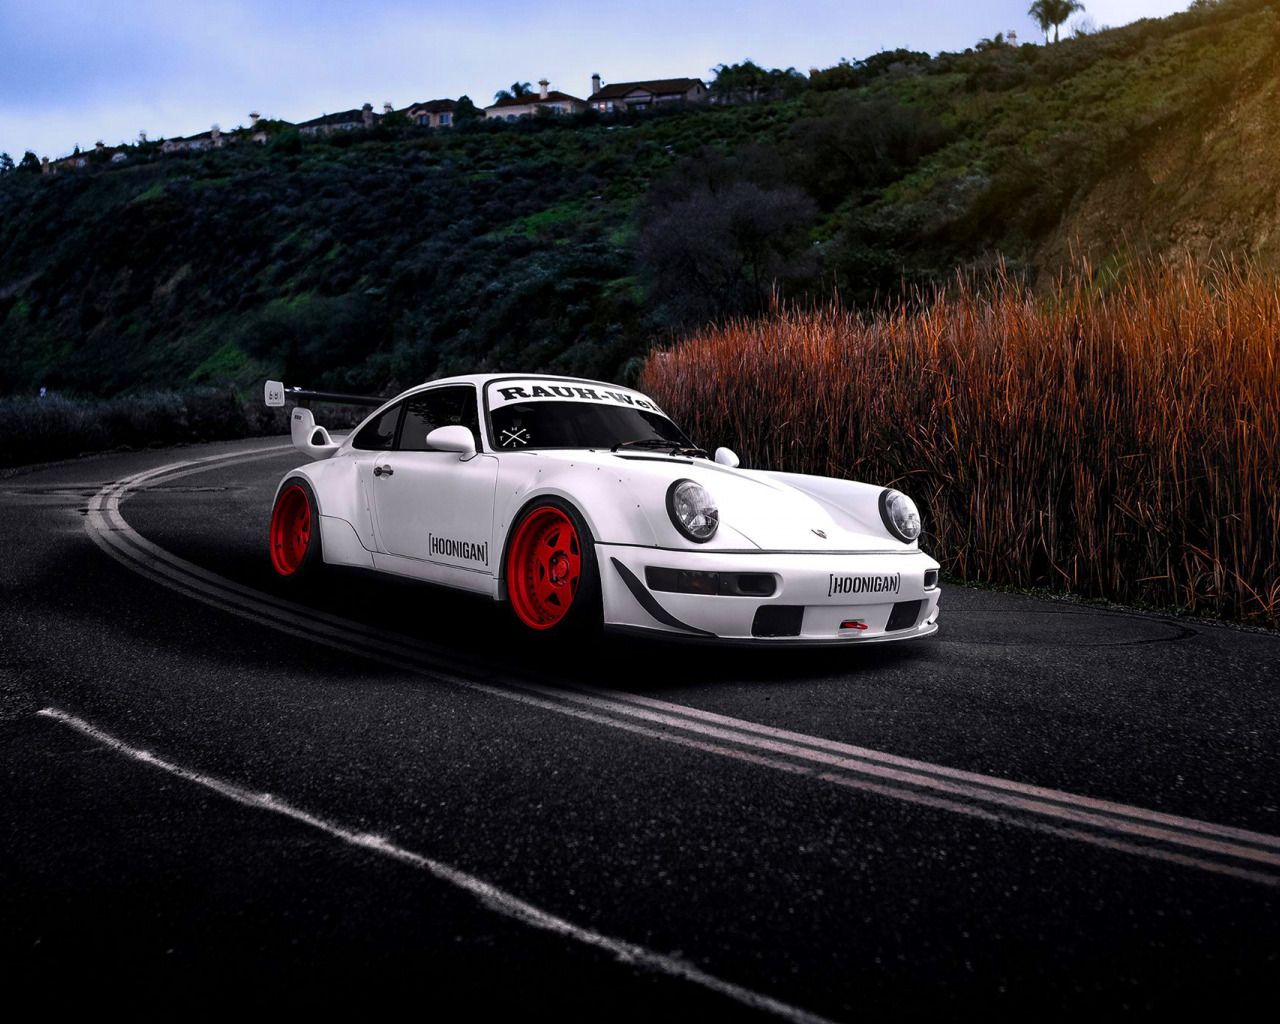 Targa Rwb Walpaper: Скачать обои Porsche, Car, Sun, White, Road, 993, RWB